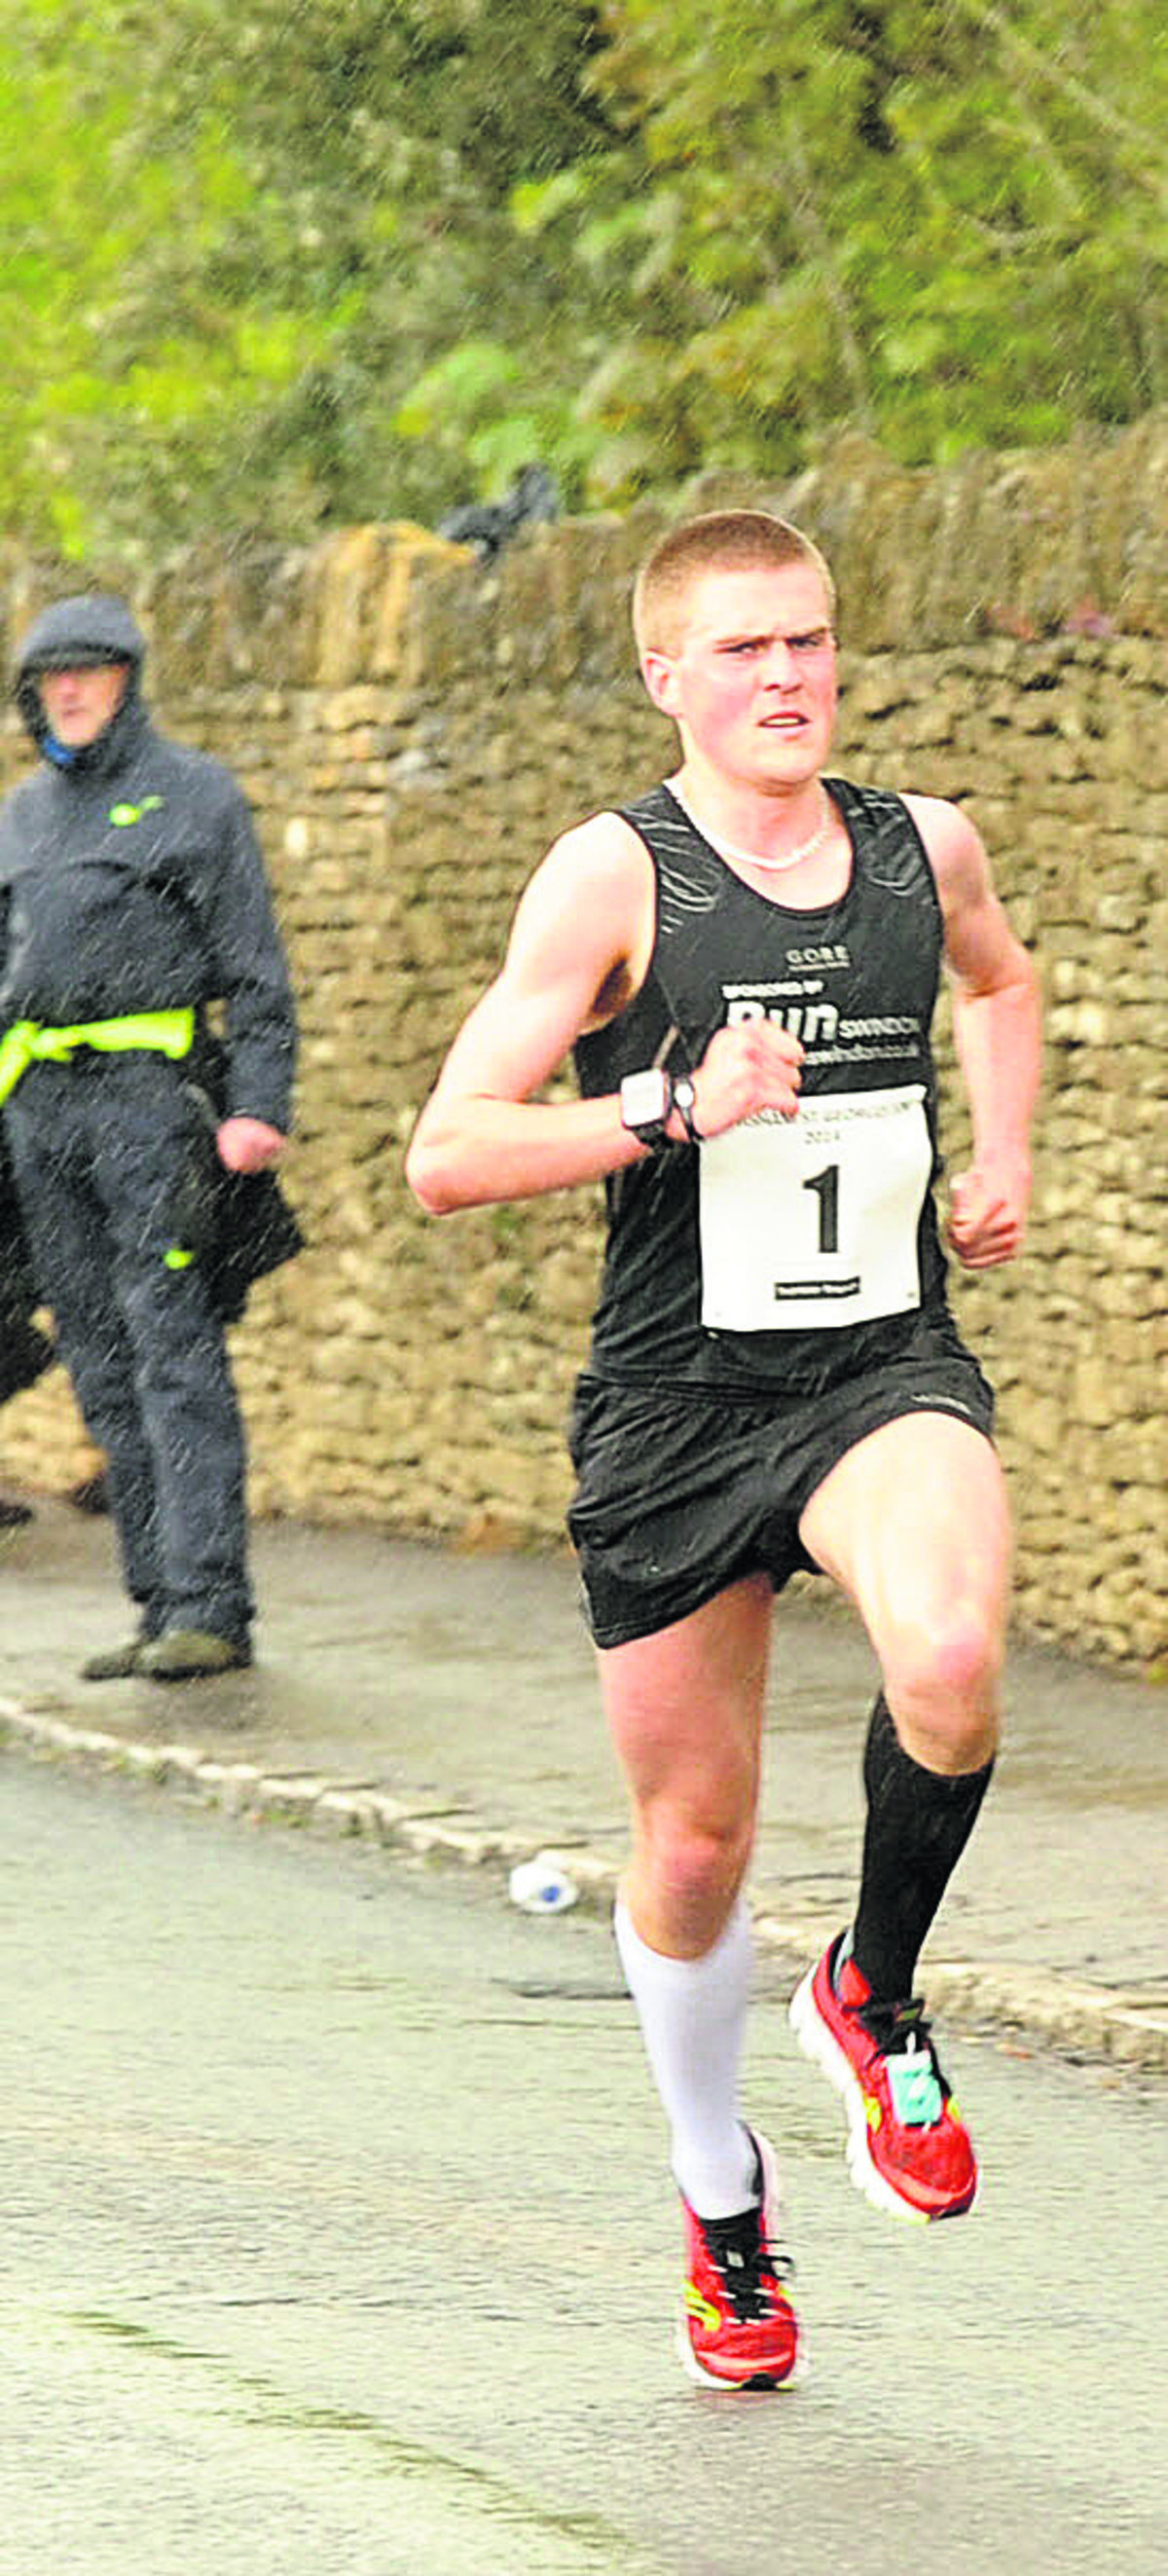 Simon Nott on his way to retaining his title in a new course record